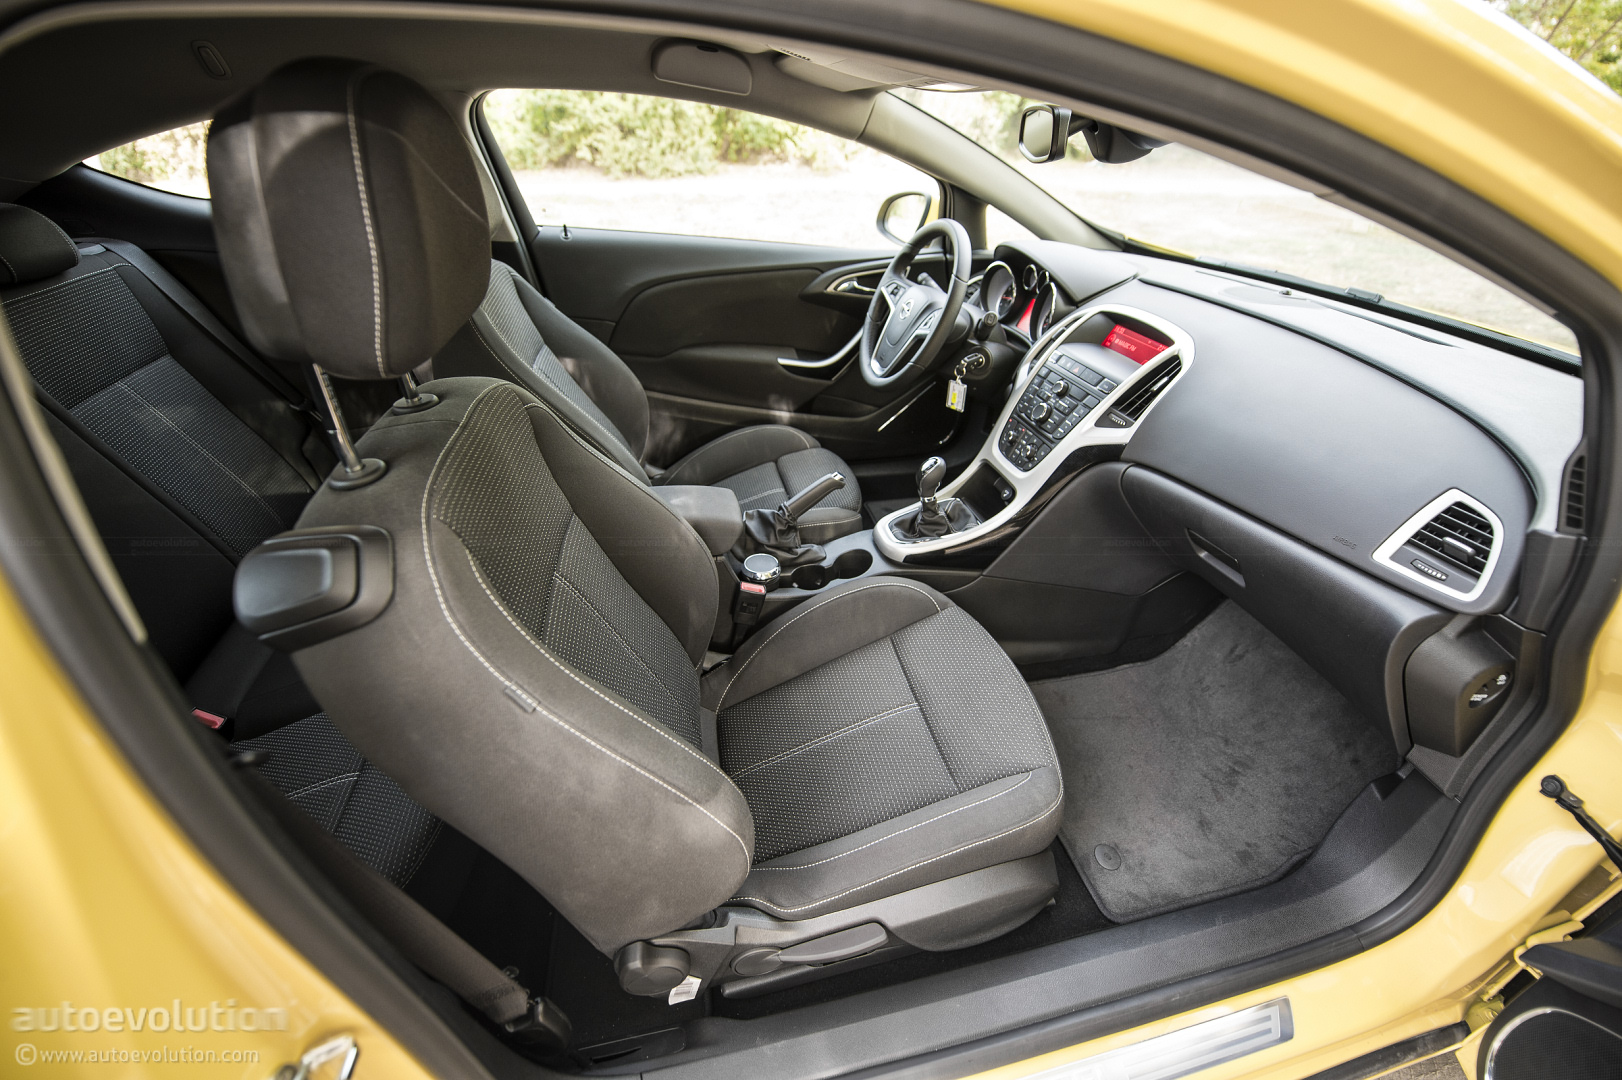 OPEL Astra GTC Review (Page 3) - autoevolution